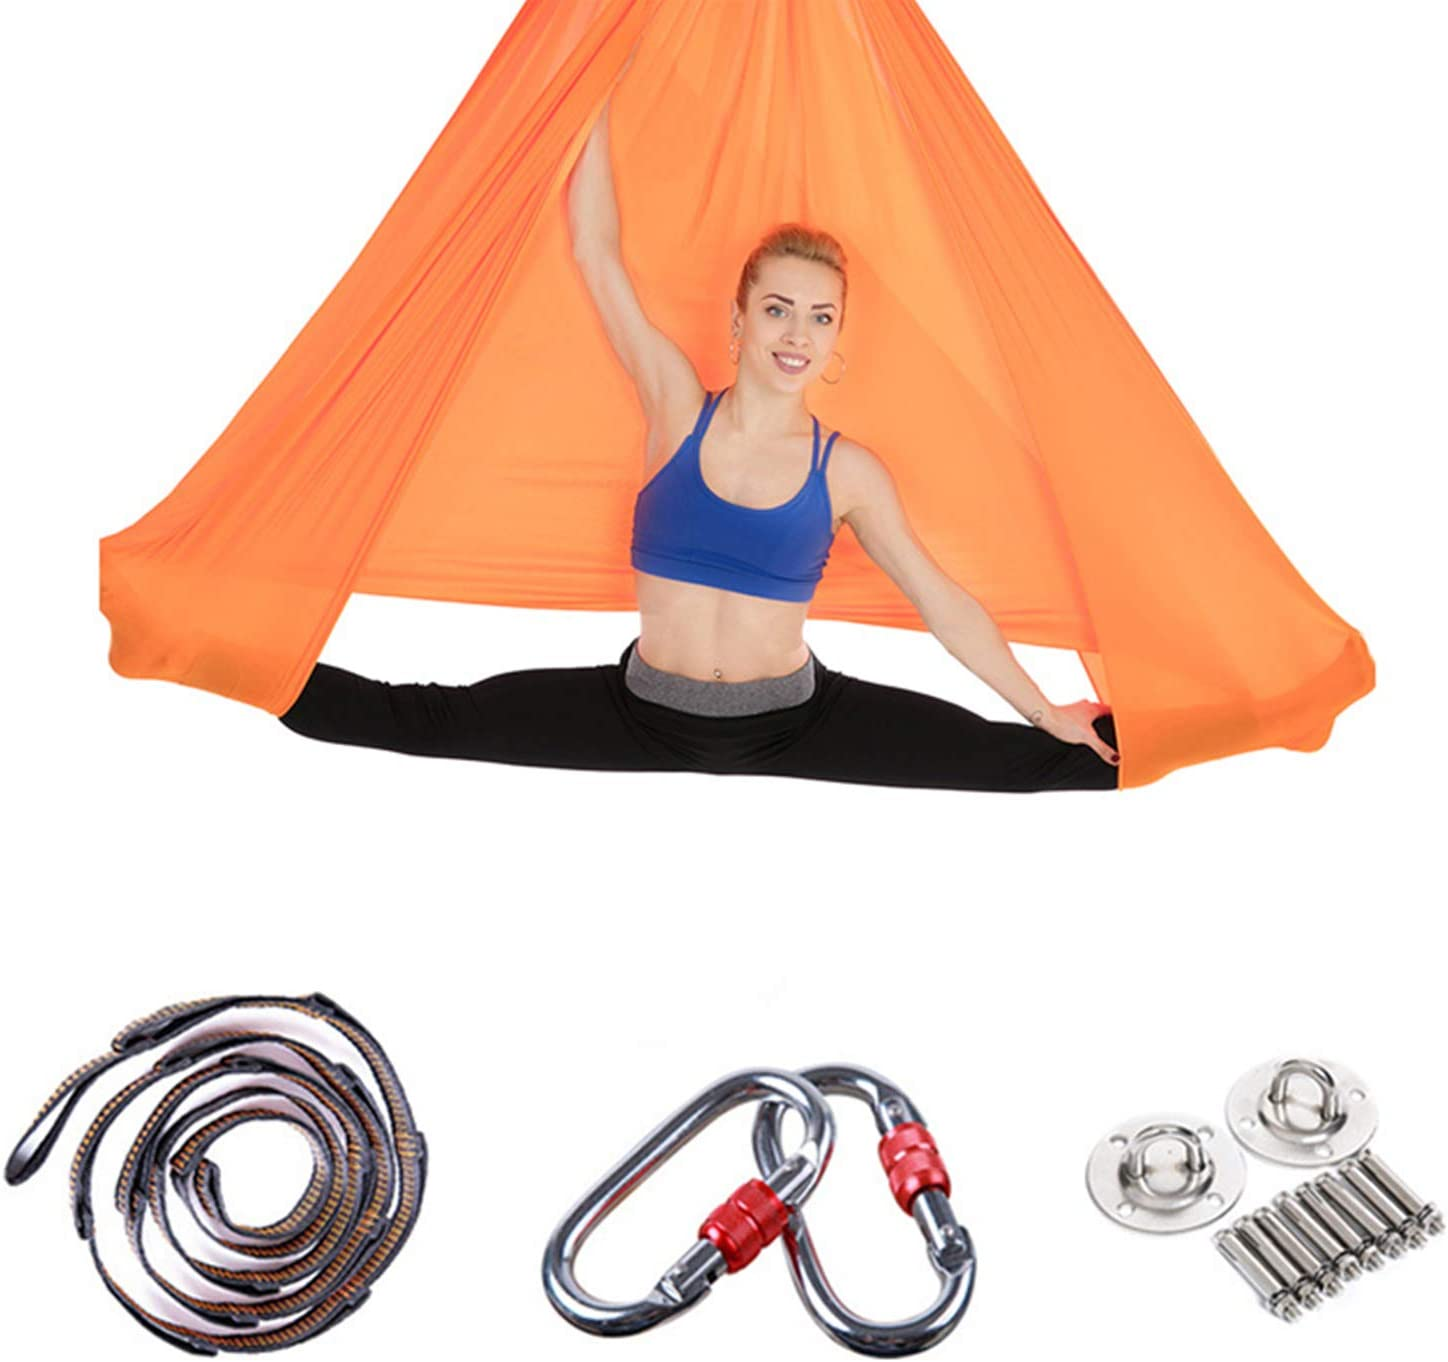 Aerial Yoga Hammock Set, Yoga Swing with Ceiling Mount and Adjustable Daisy Chains Strap, Inversion Exercise Tools for Beginners and Professionals, for Home and Studio (Orange) : Sports & Outdoors